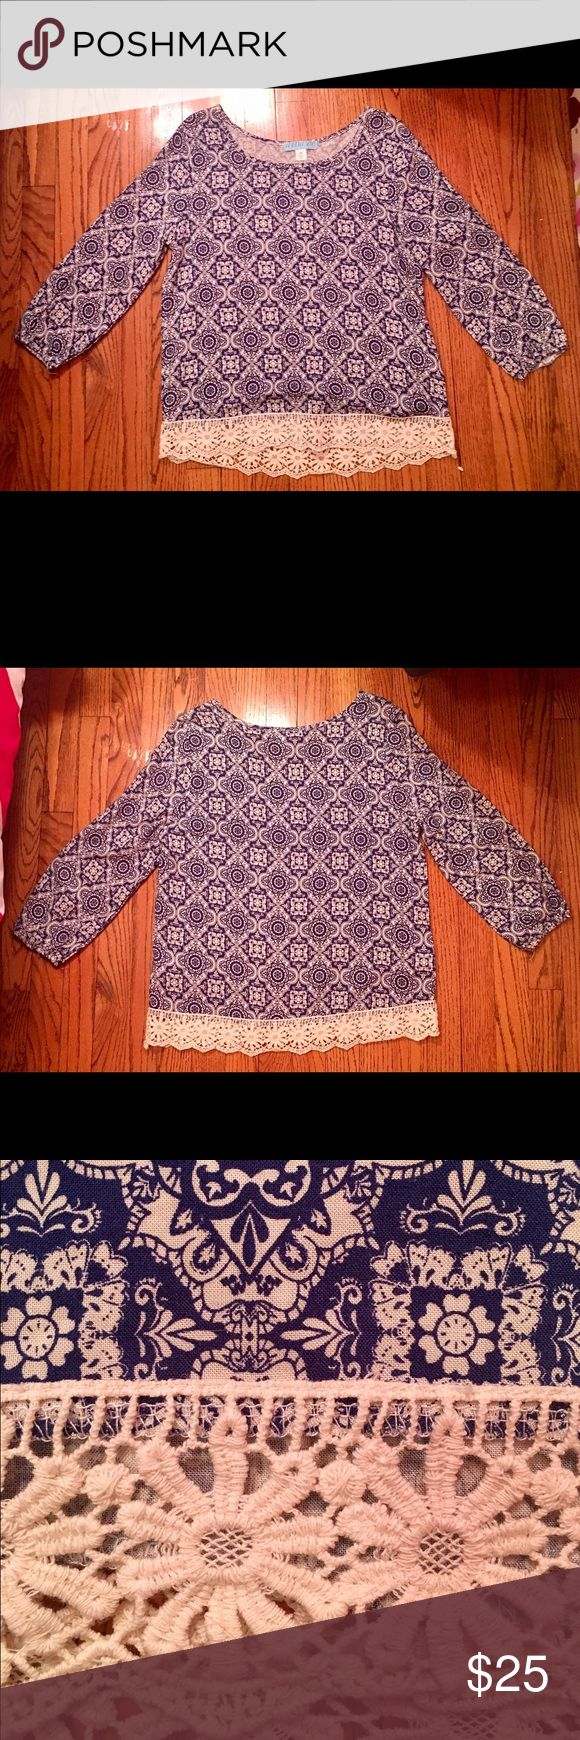 Blue and white long sleeved blouse LOVE this top! Great for a night out in the city and you can dress it up or down! Tops Blouses